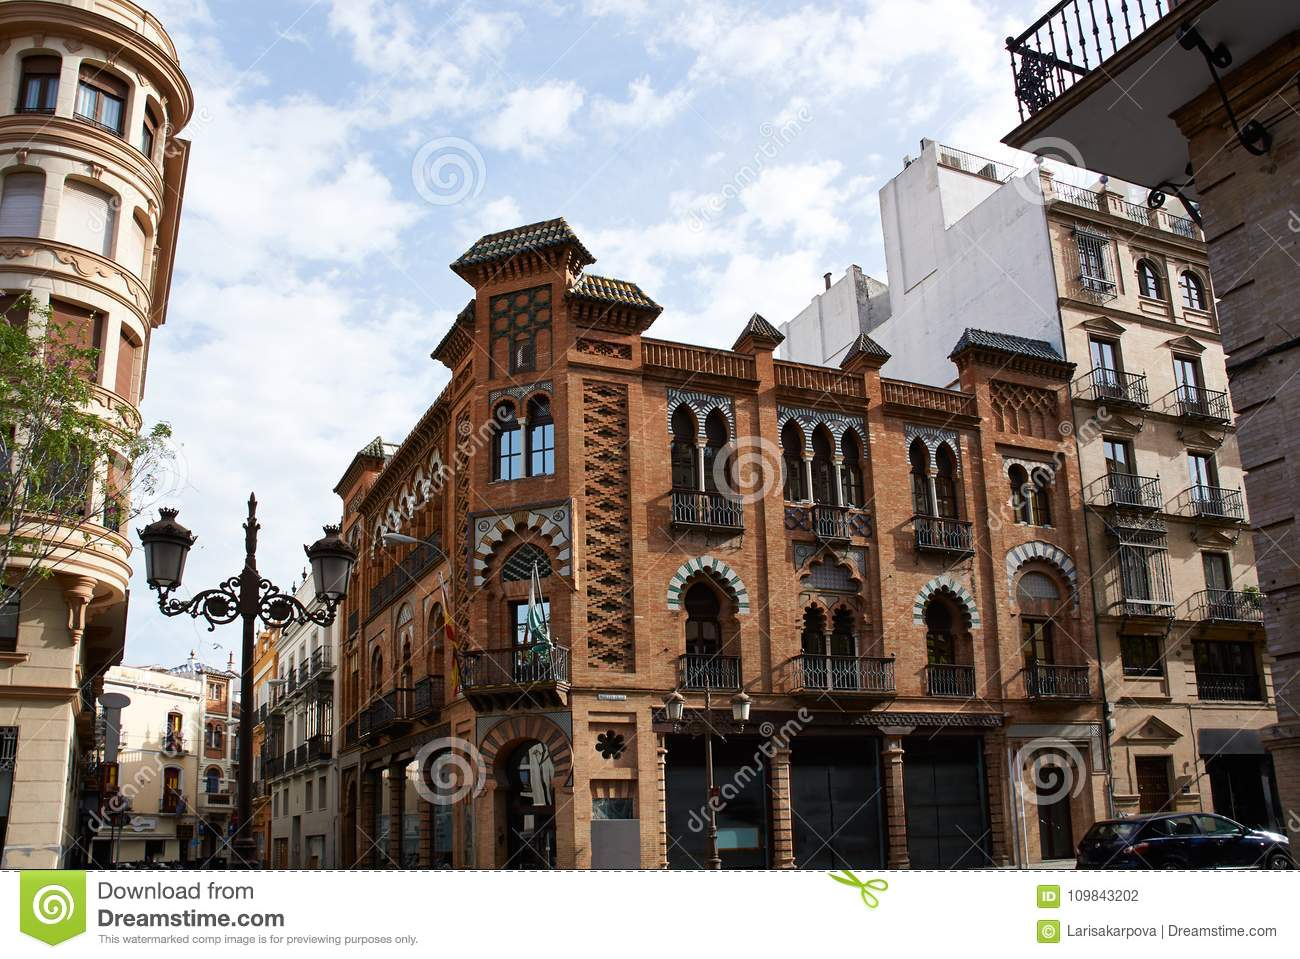 Download Historic Buildings And Monuments Of Seville Spain Spanish Architectural Styles Gothic